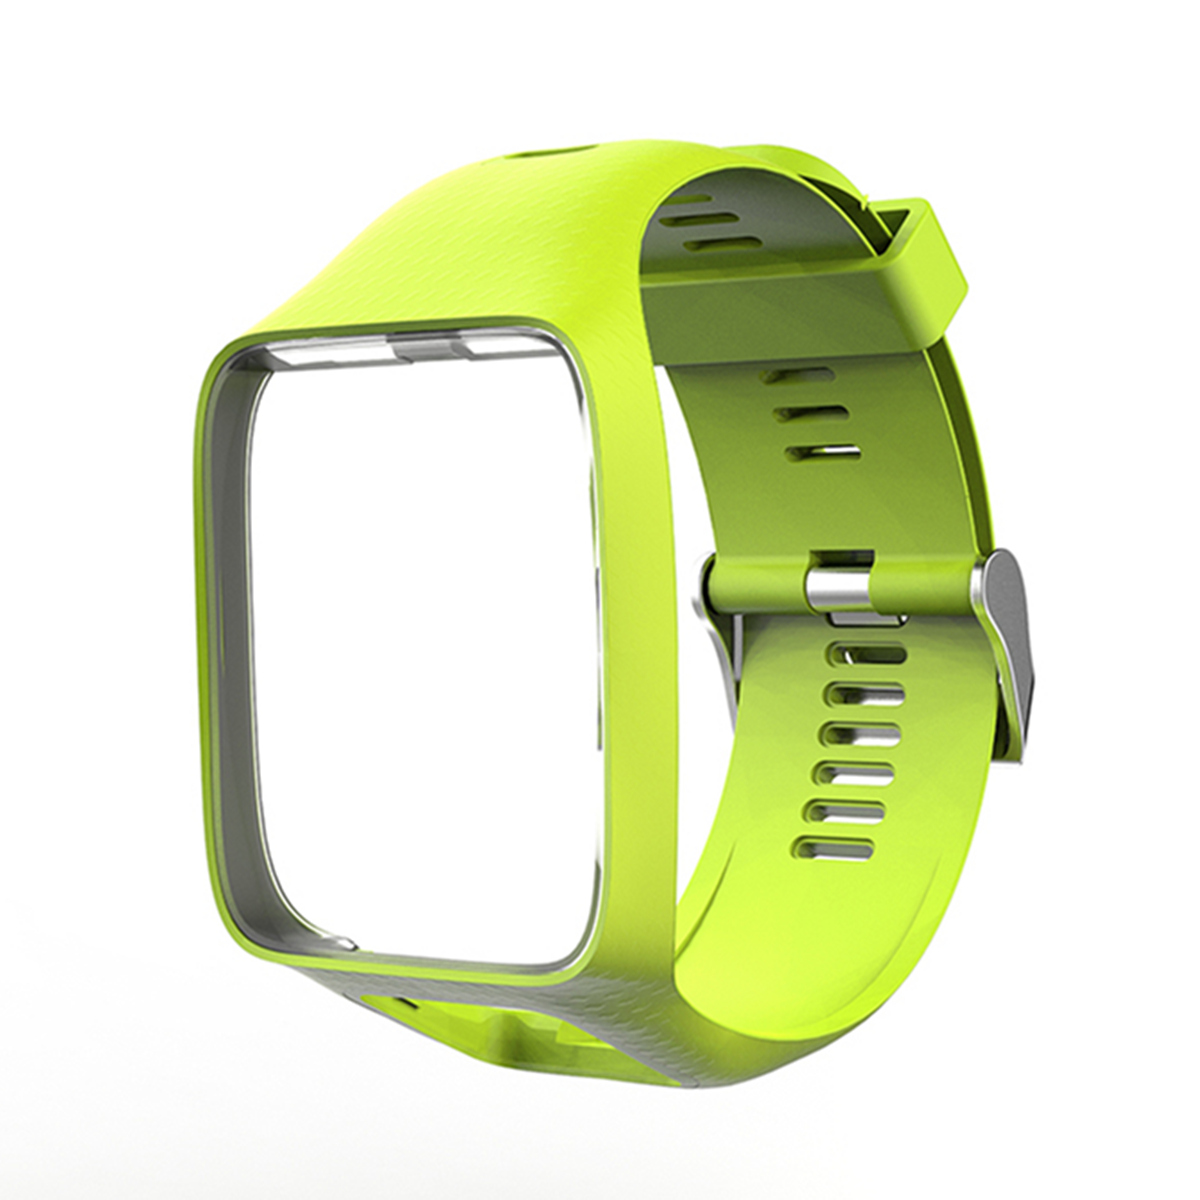 Silicone Watch Band Strap Replacement For TomTom R